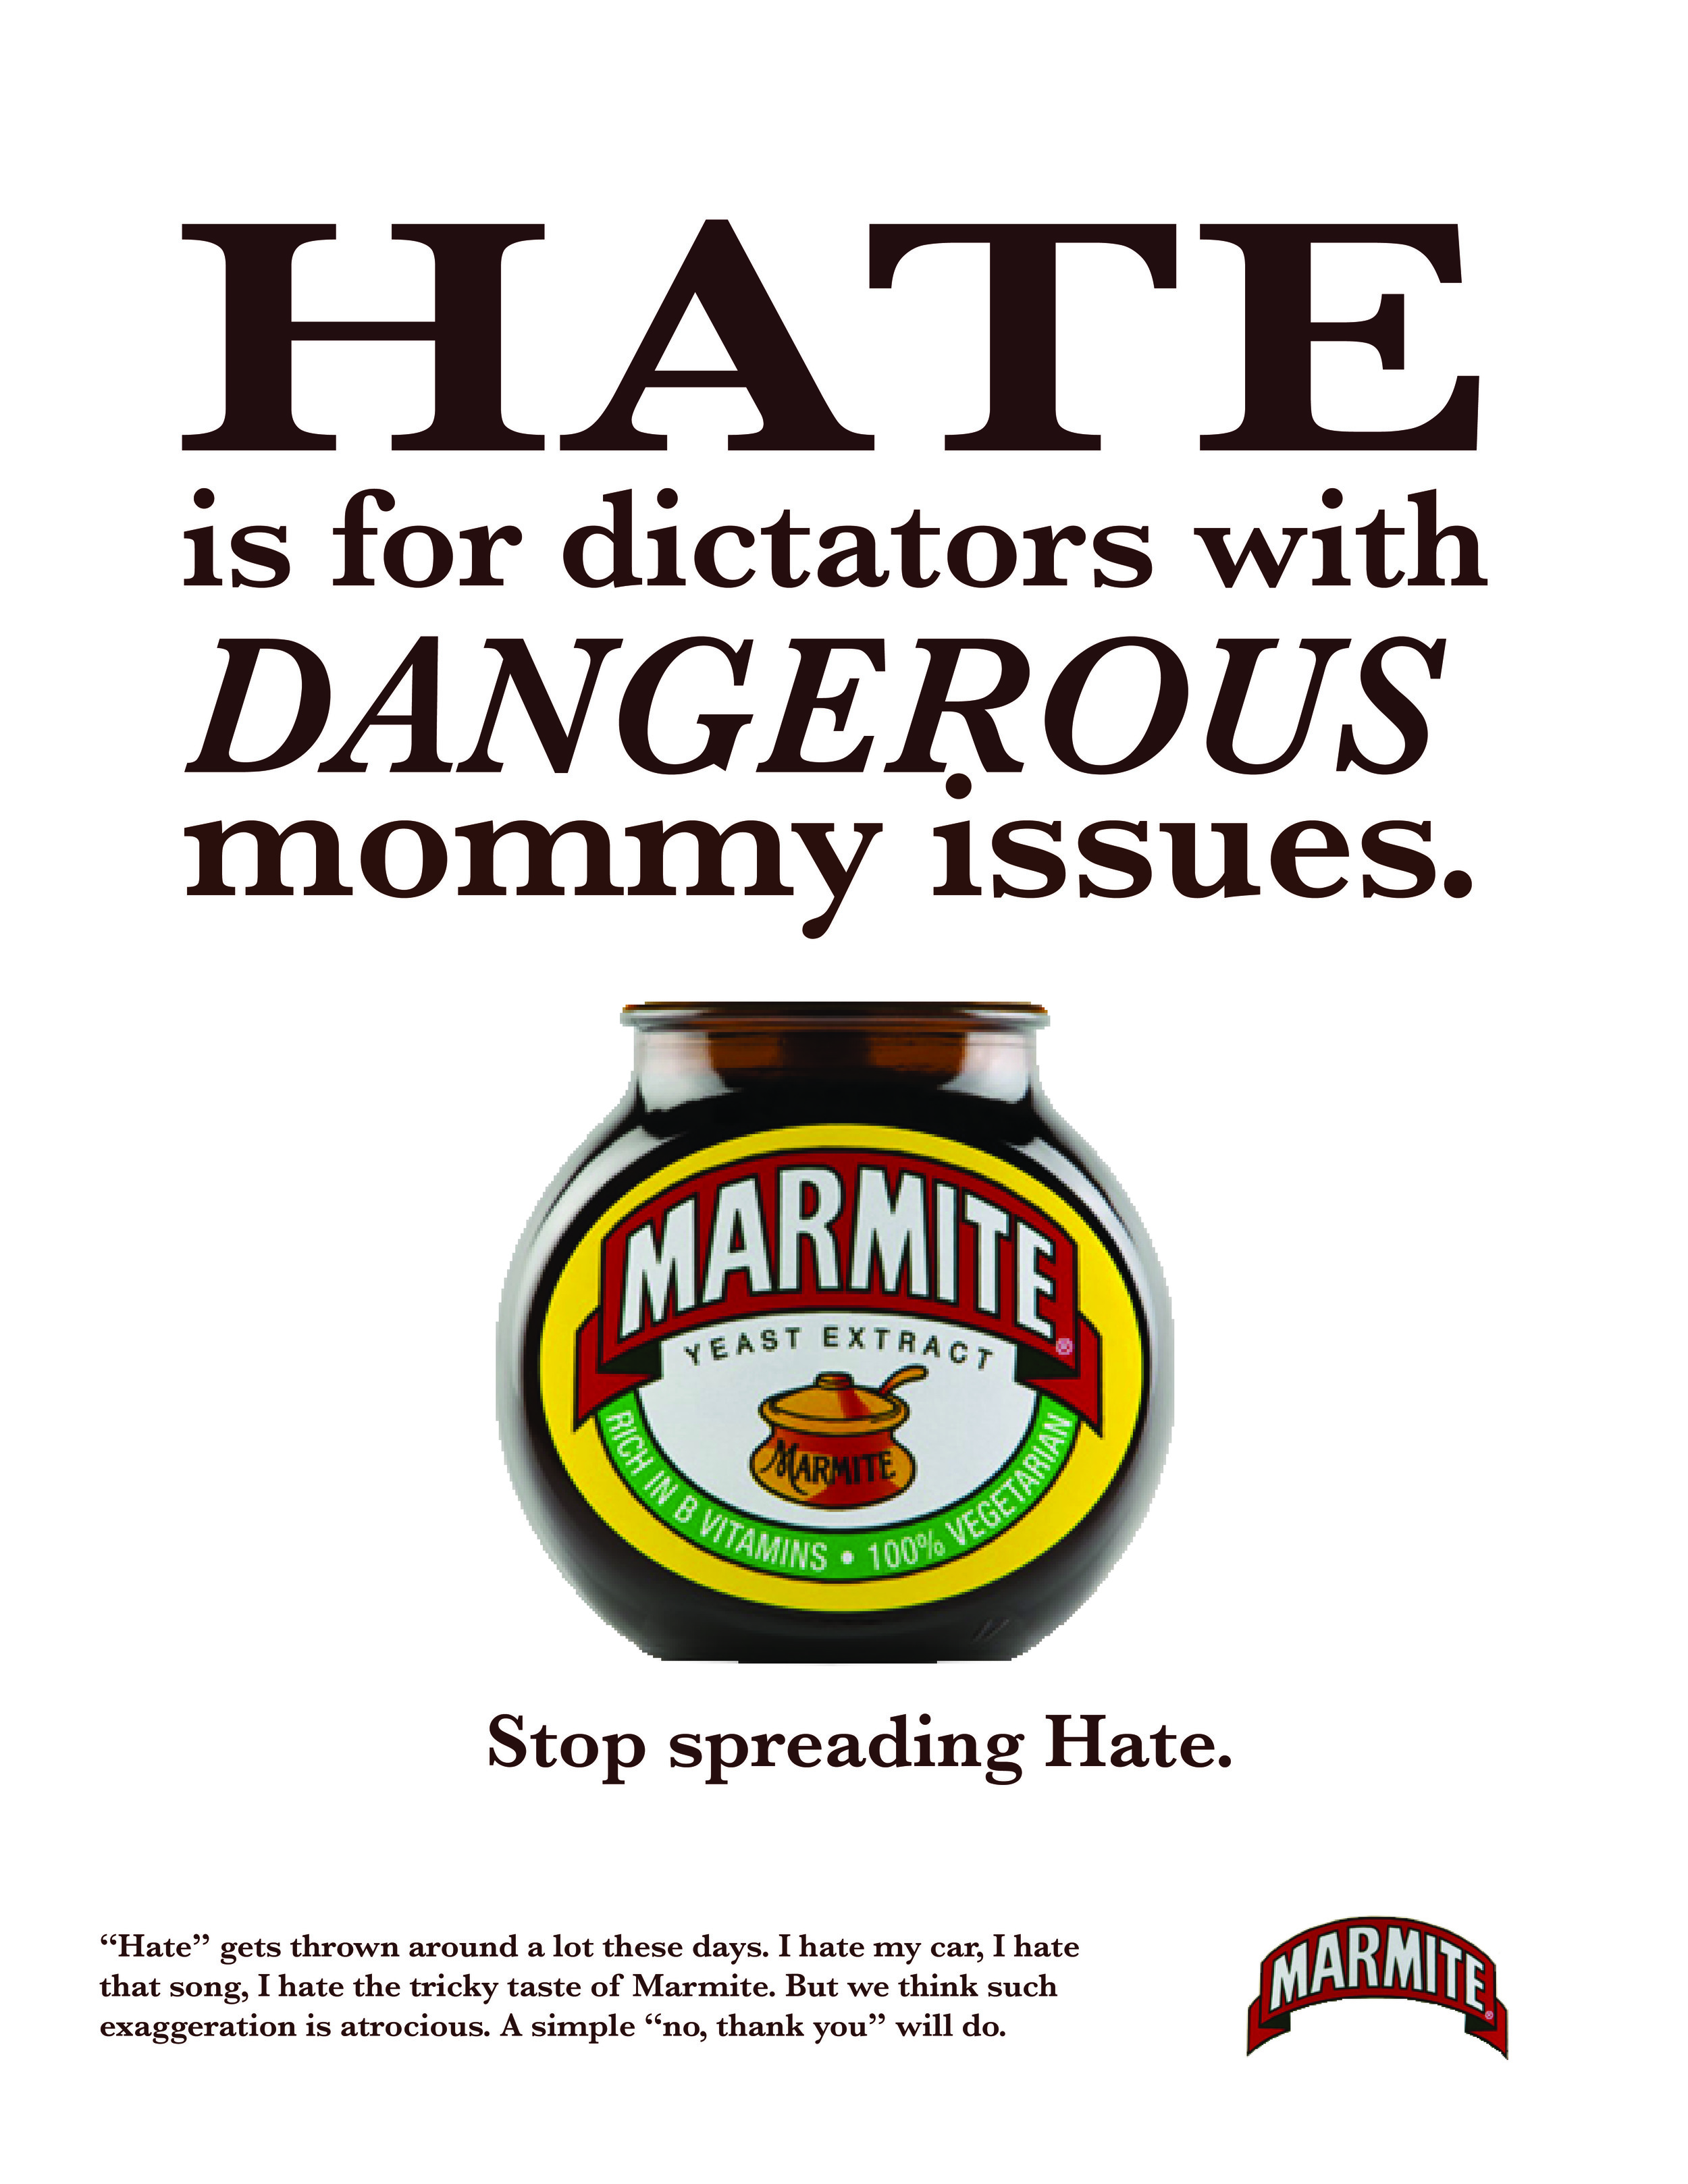 """""""Hate"""" gets thrown around a lot these days. I hate my car, I hate that song, I hate the tricky taste of Marmite. But we think such exaggeration is atrocious. A simple """"no, thank you"""" will do."""